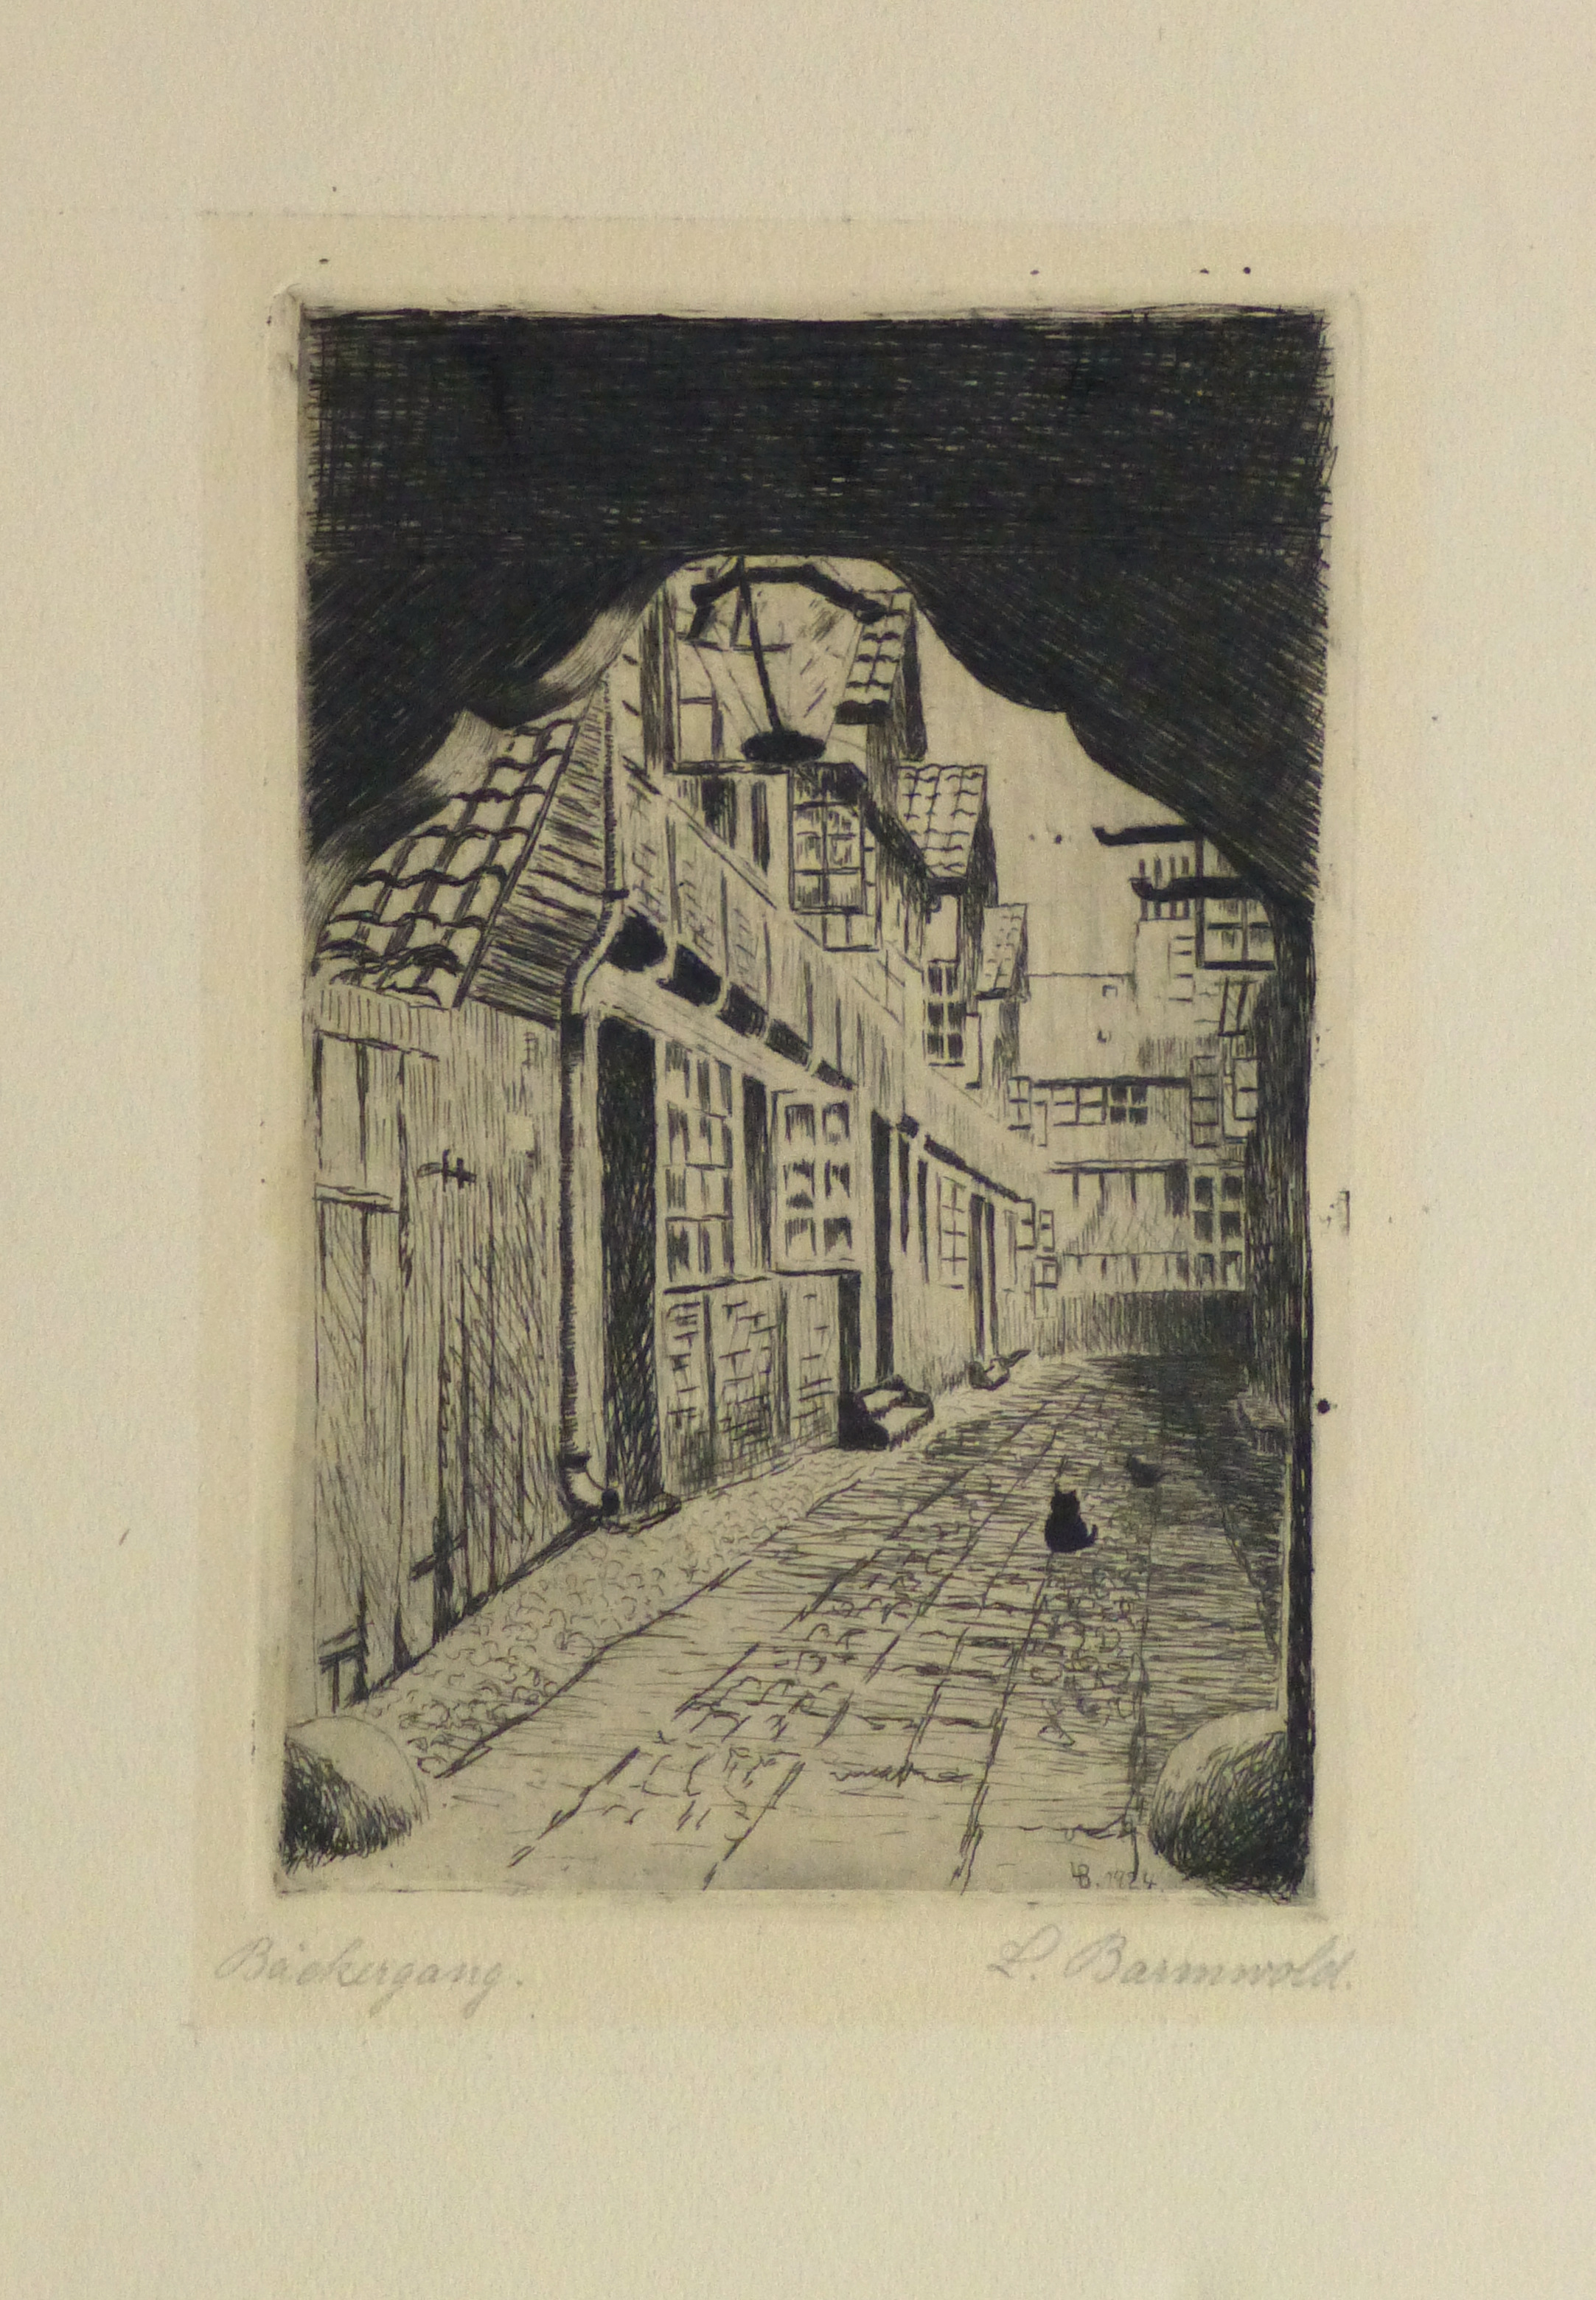 Etching - The Alley Cat, 1924-main-10755M